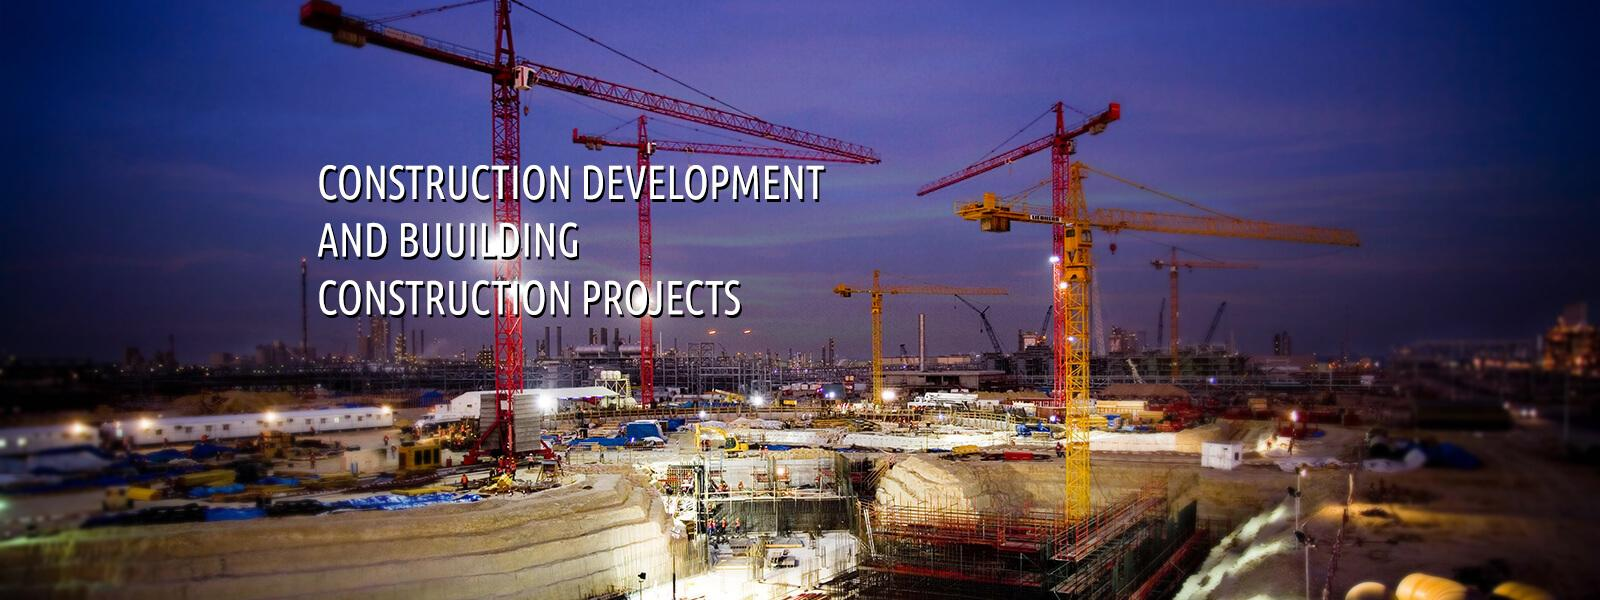 Construction, Development and Buiolding projects